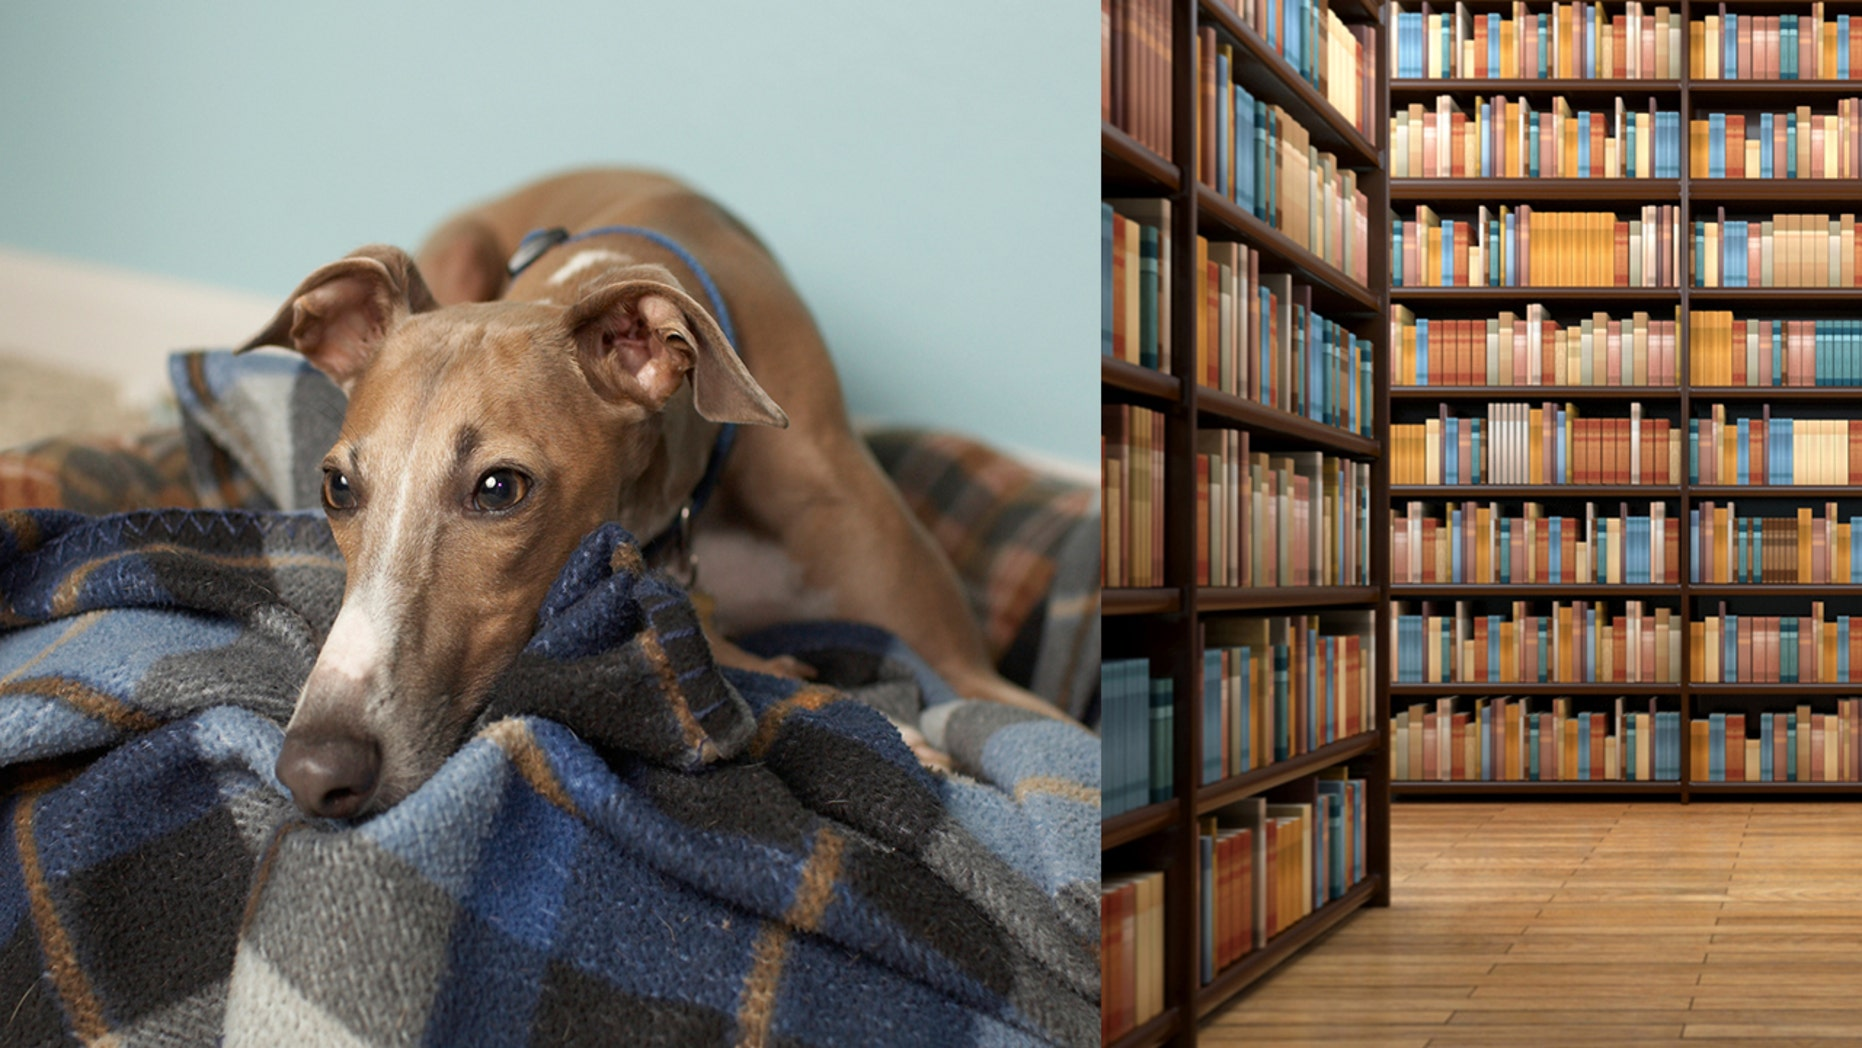 A sorrowful-looking greyhound made the rounds on social media, after no one showed up for his story time hour at the library.